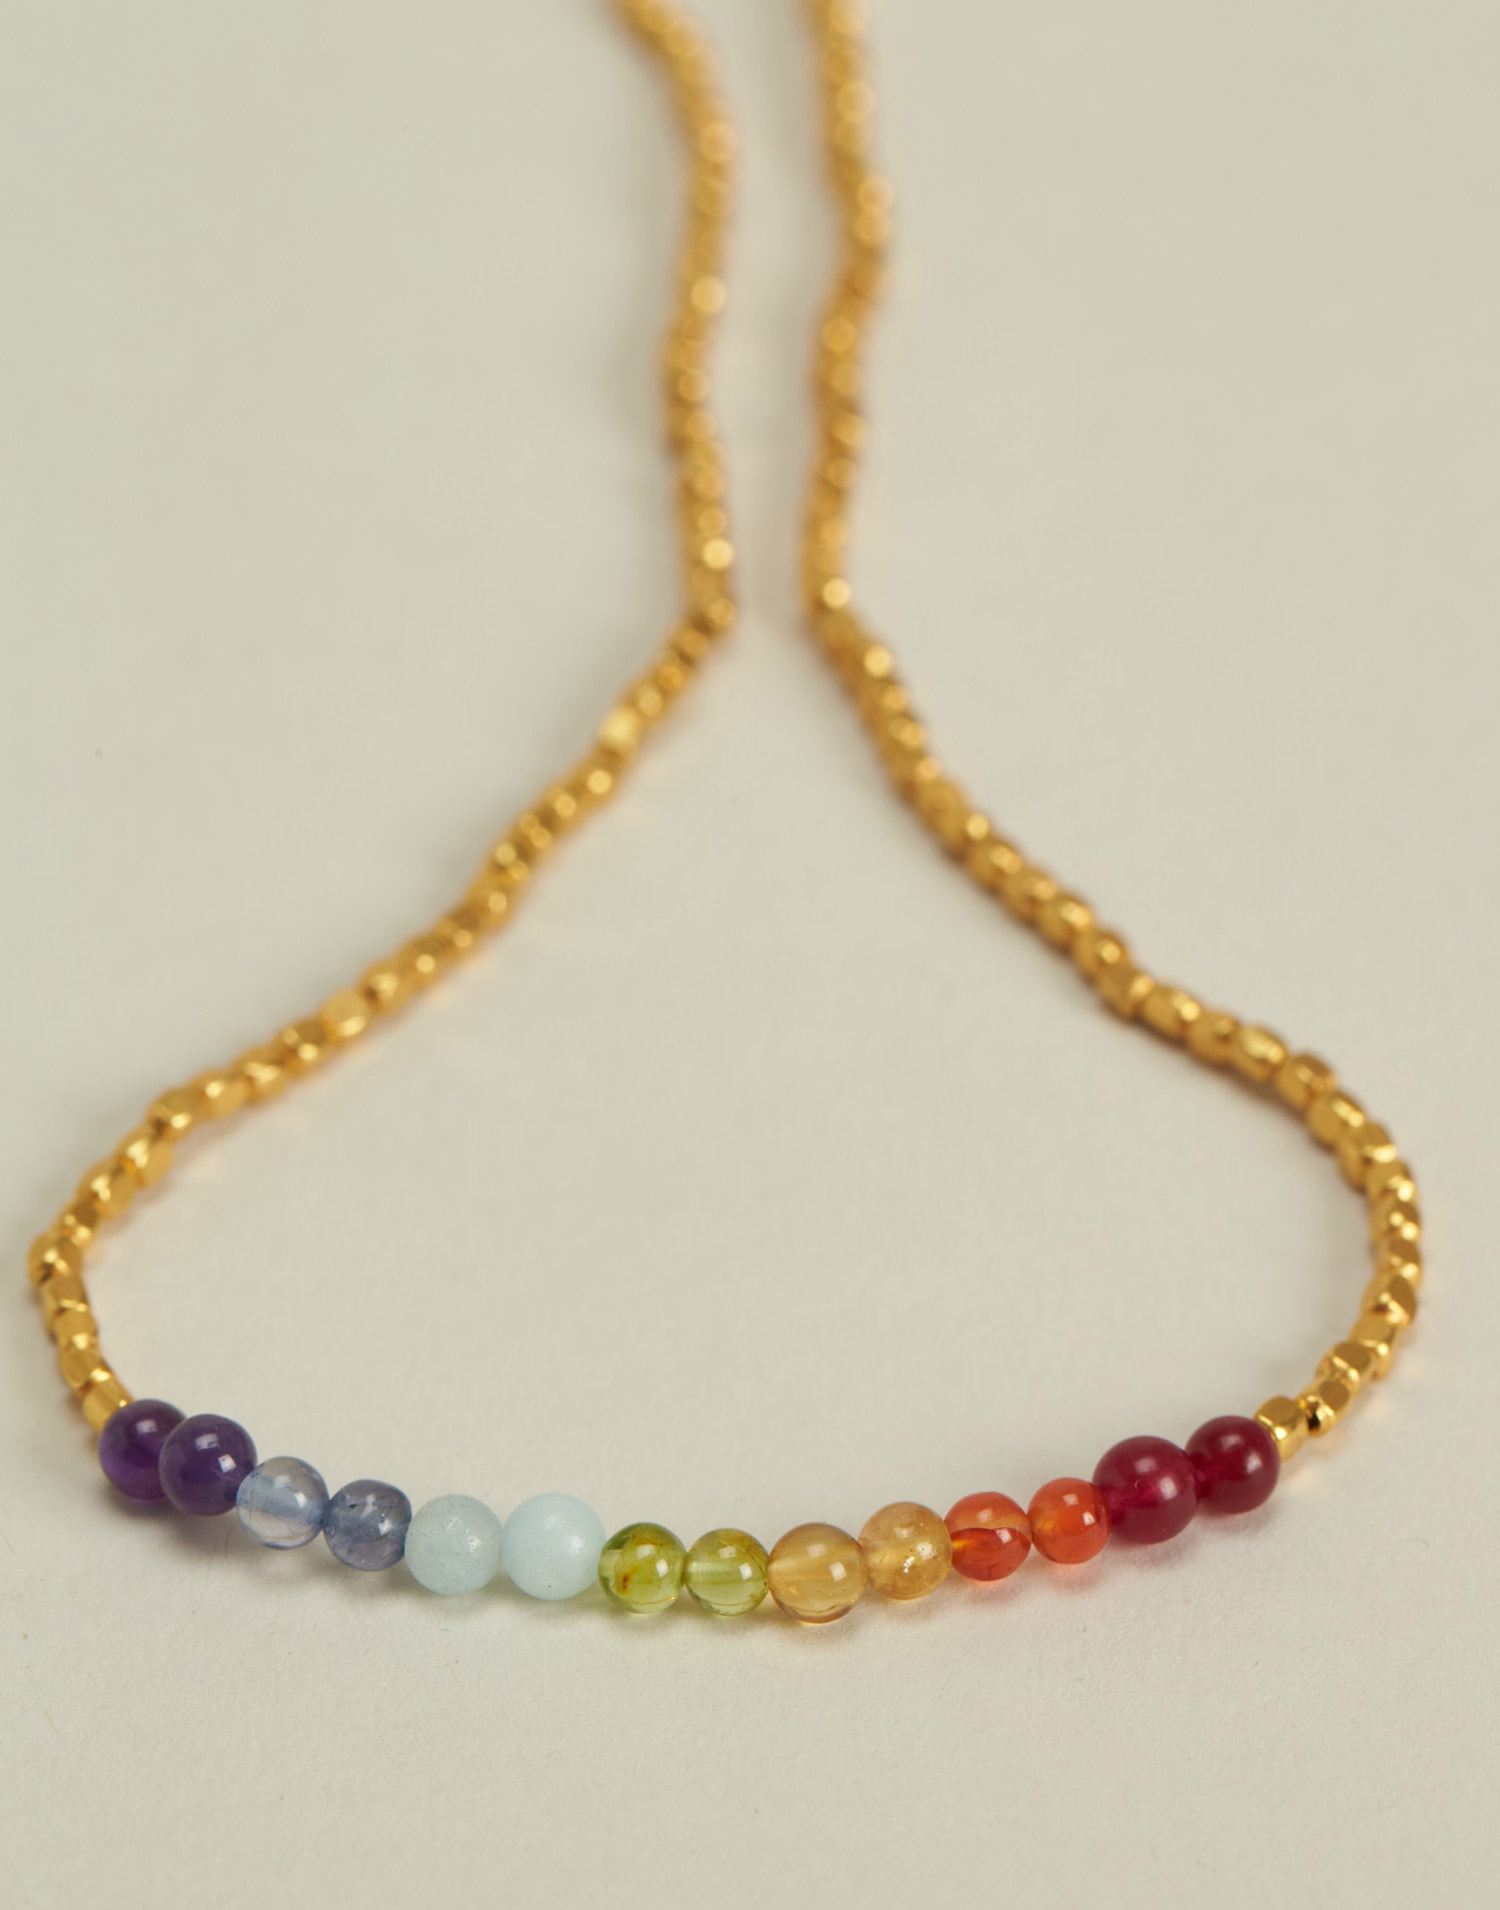 7 chakras gold plated necklace